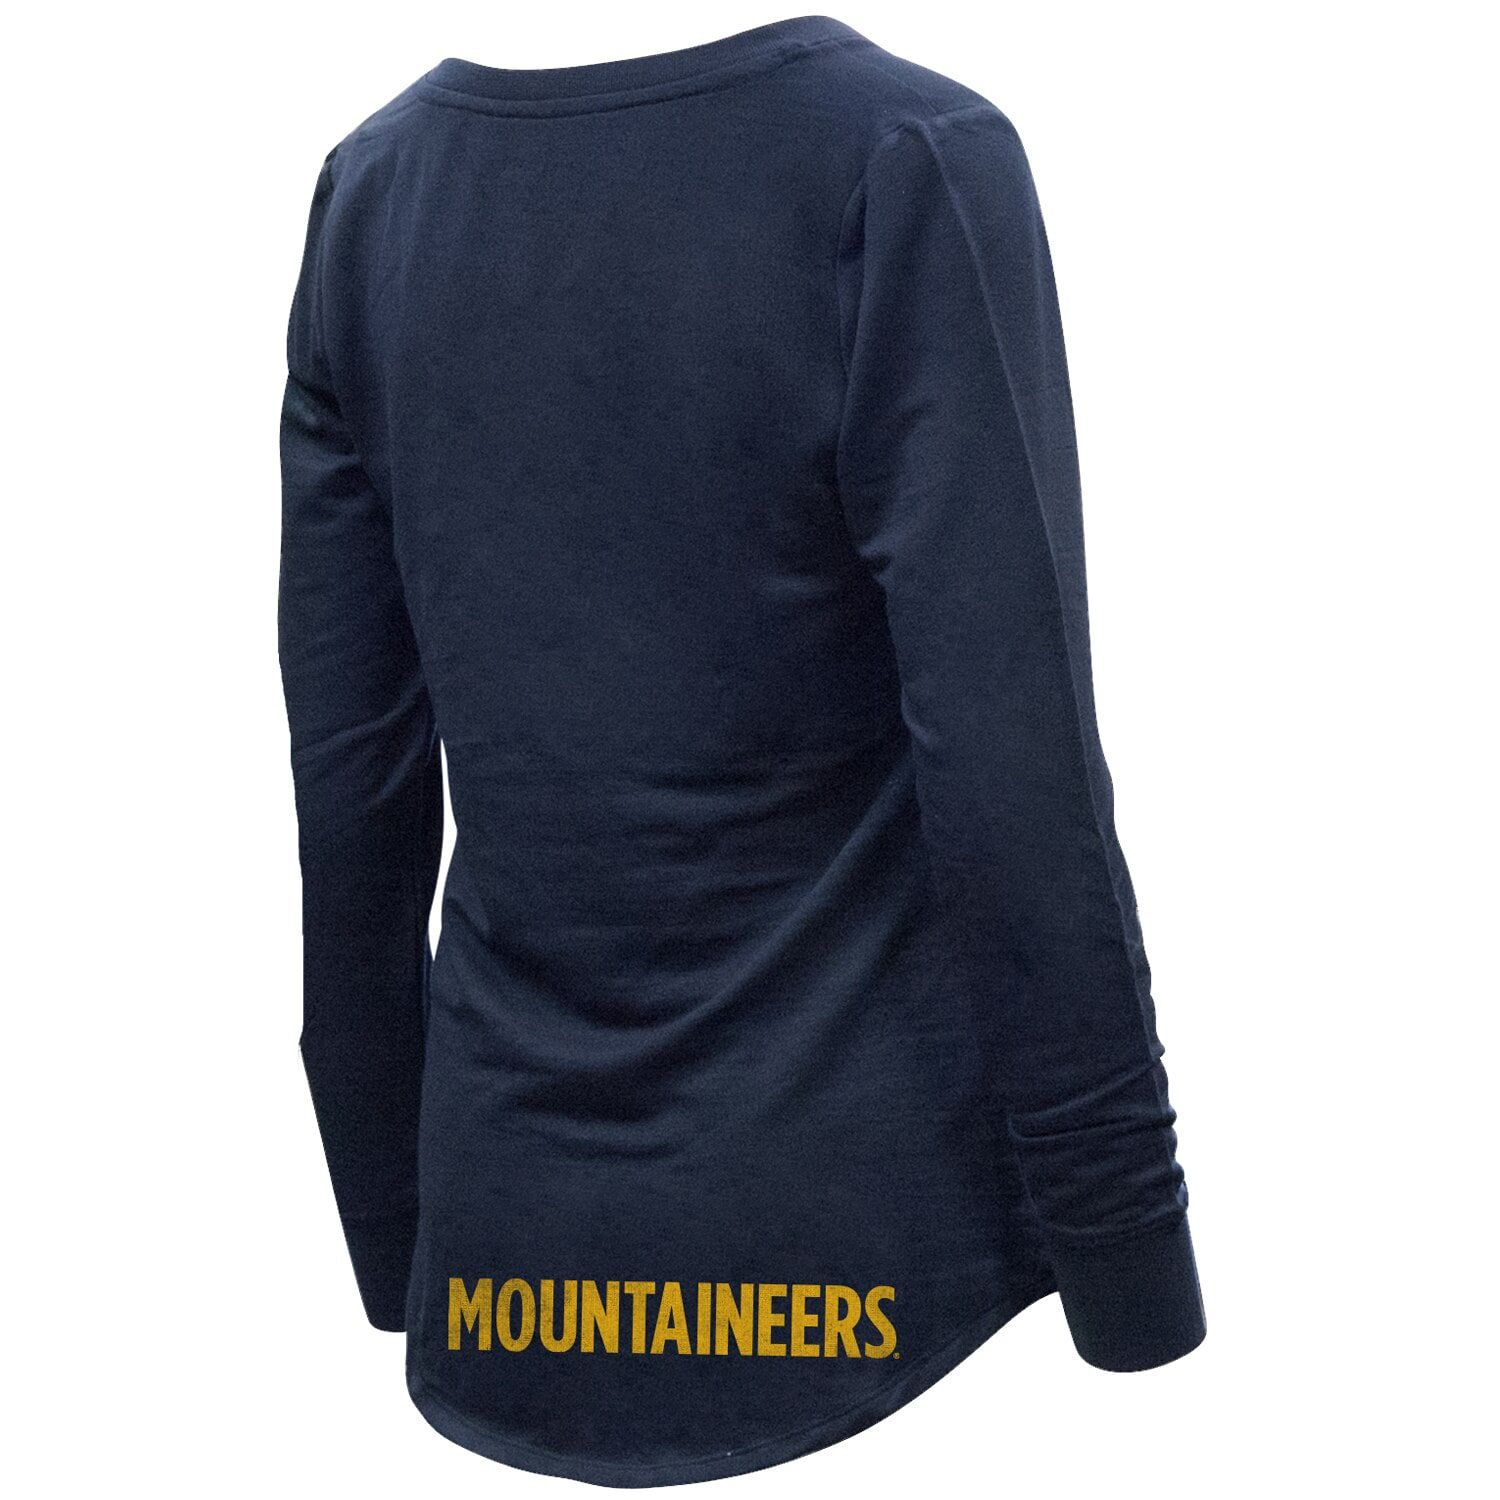 Women's Navy West Virginia Mountaineers Belle Relaxed Tri-Blend V-Neck Pullover Sweatshirt #westvirginia